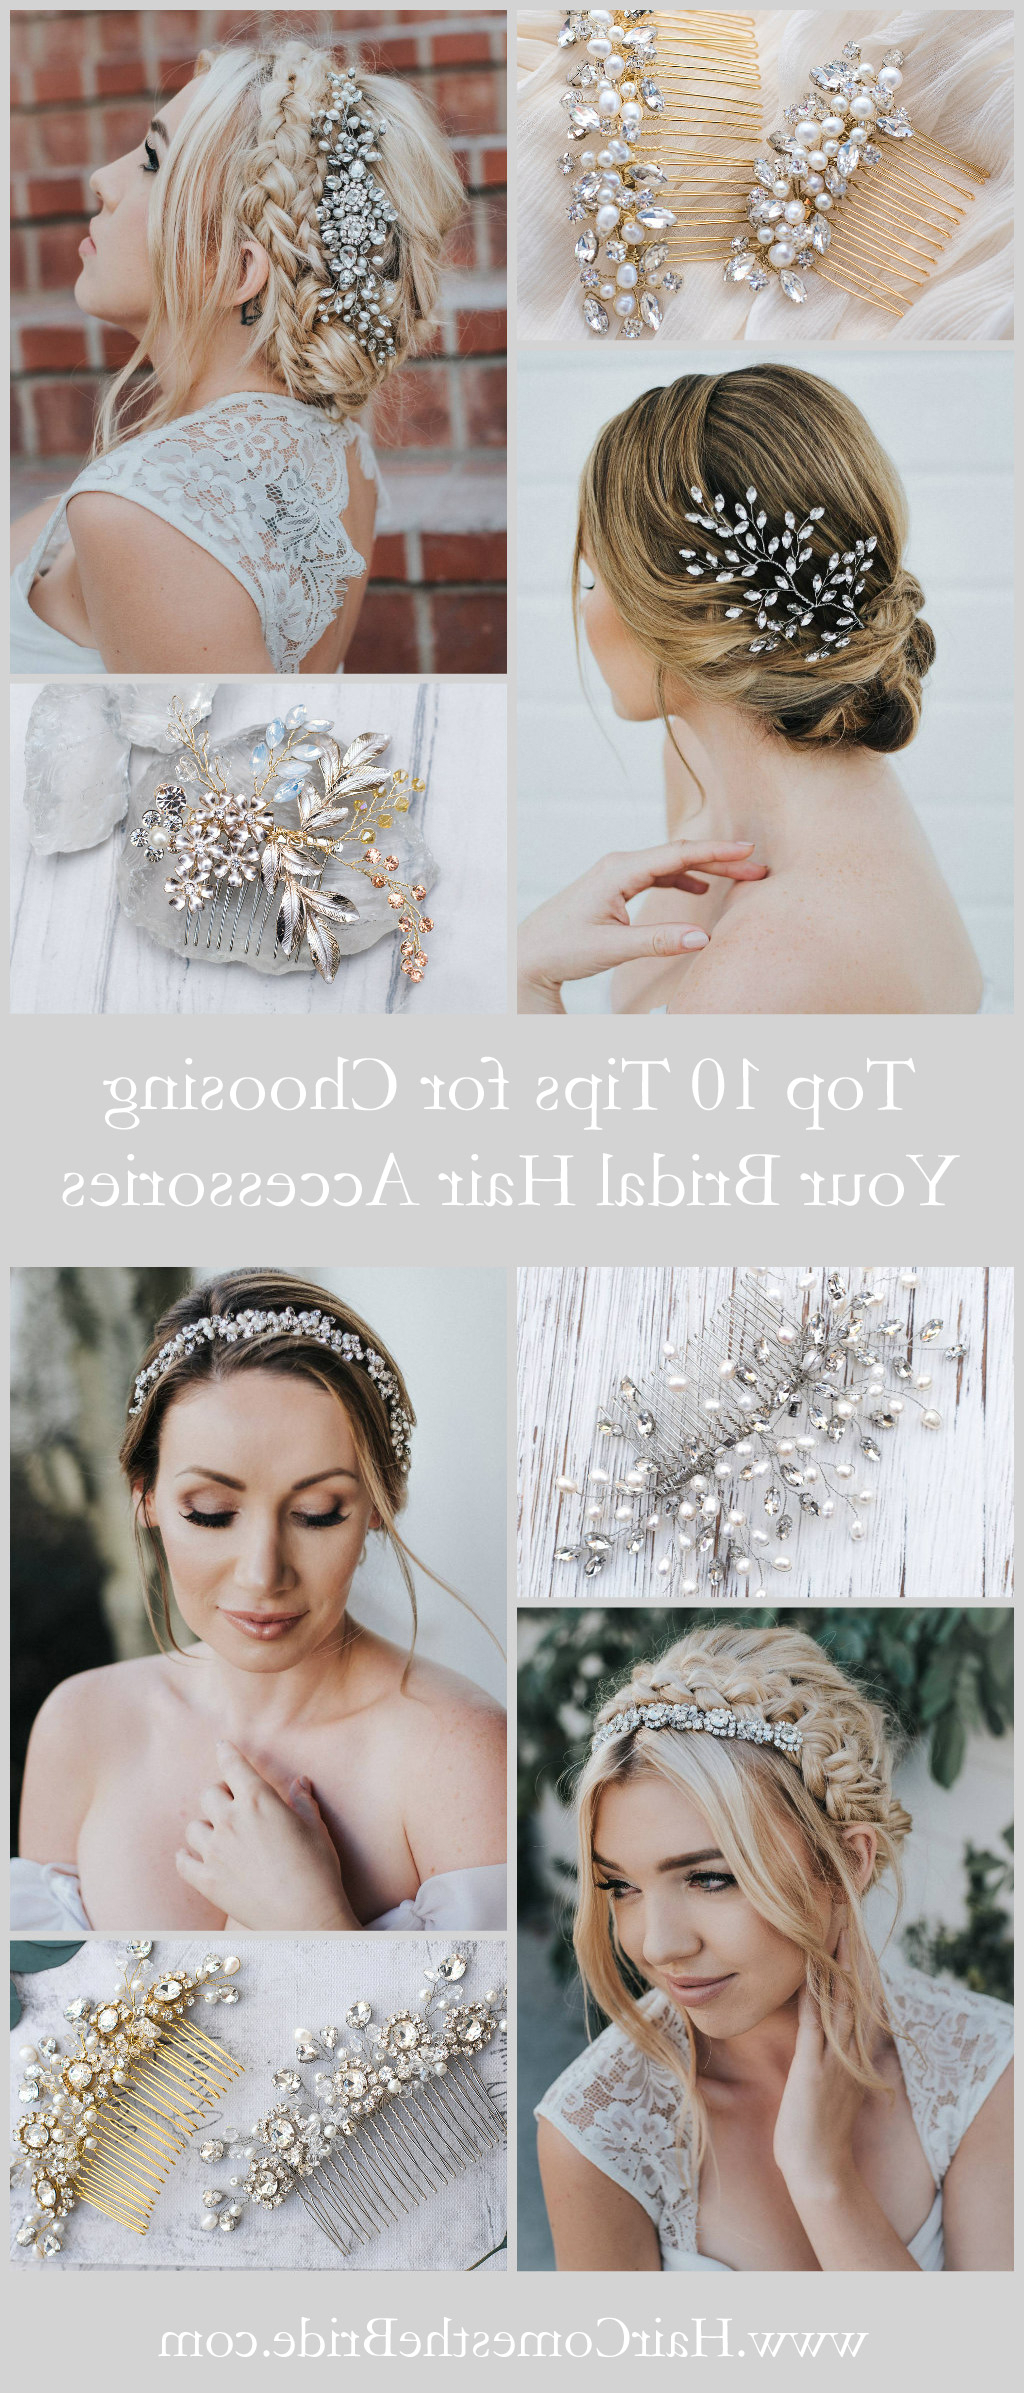 Top 10 Tips For Choosing Your Bridal Hair Accessories – Hair Comes In Recent Vintage Asymmetrical Wedding Hairstyles (View 13 of 20)